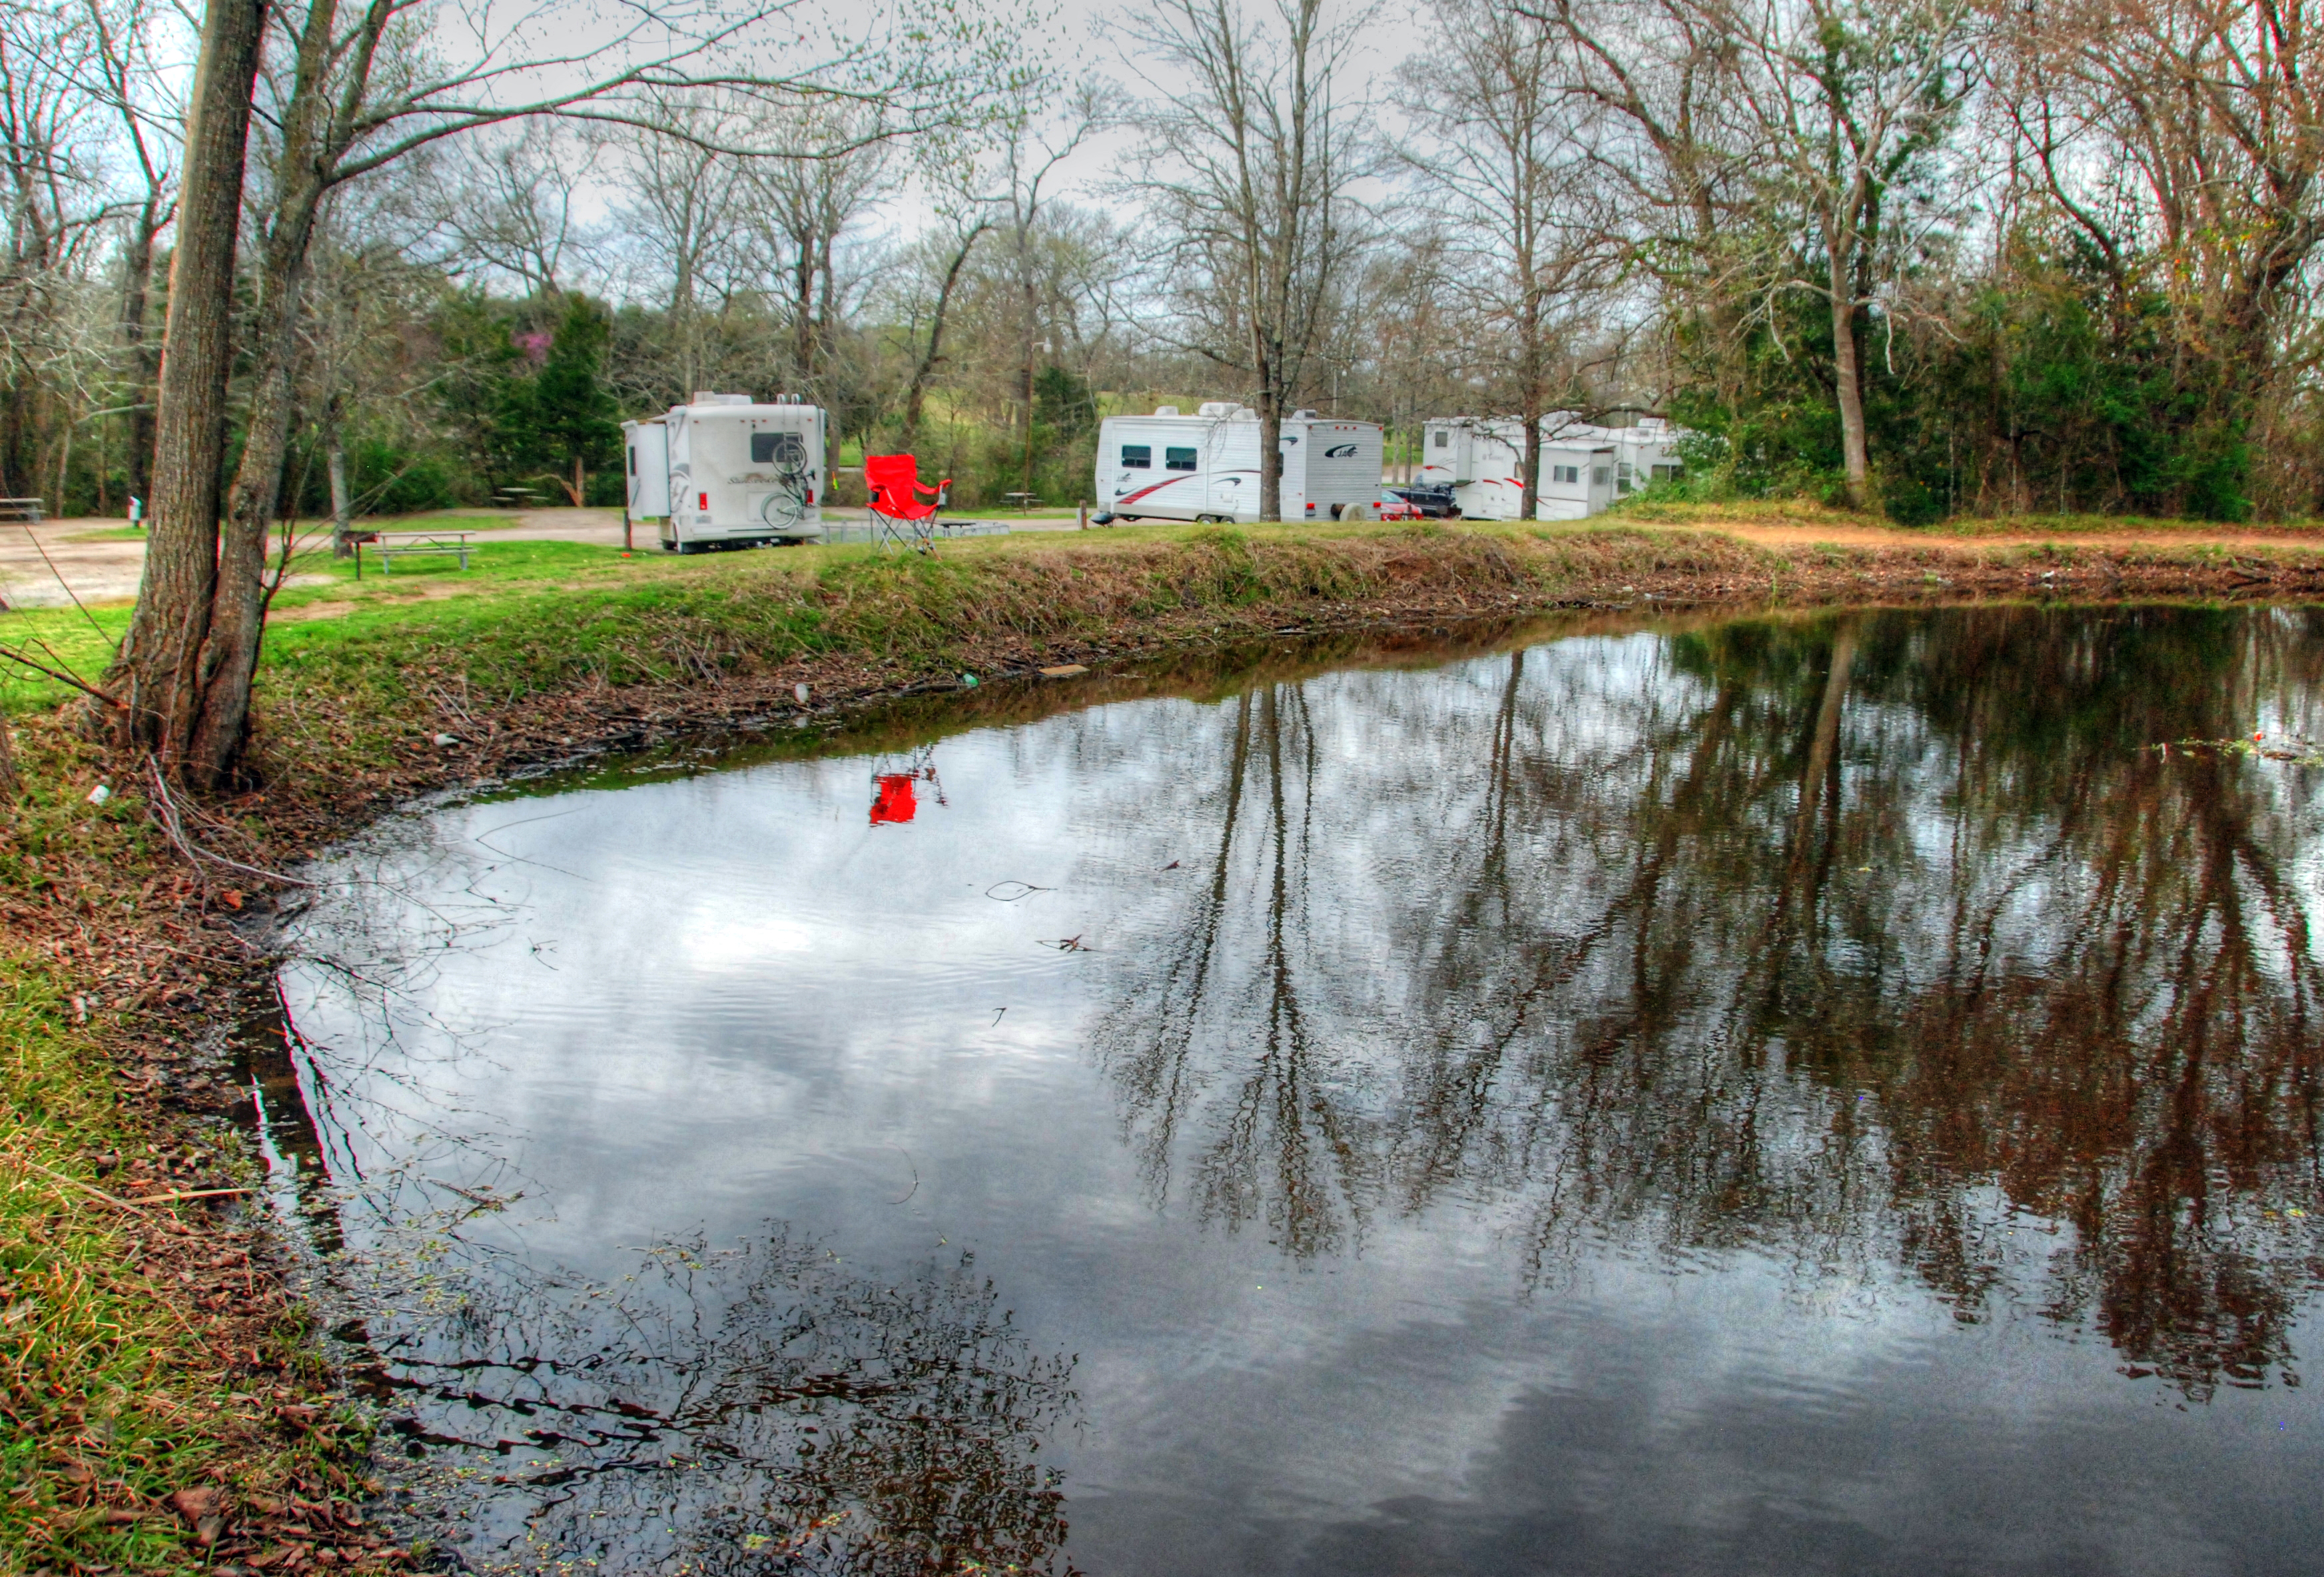 Glamping at an rv resort shore looks nice for Bass fishing ponds